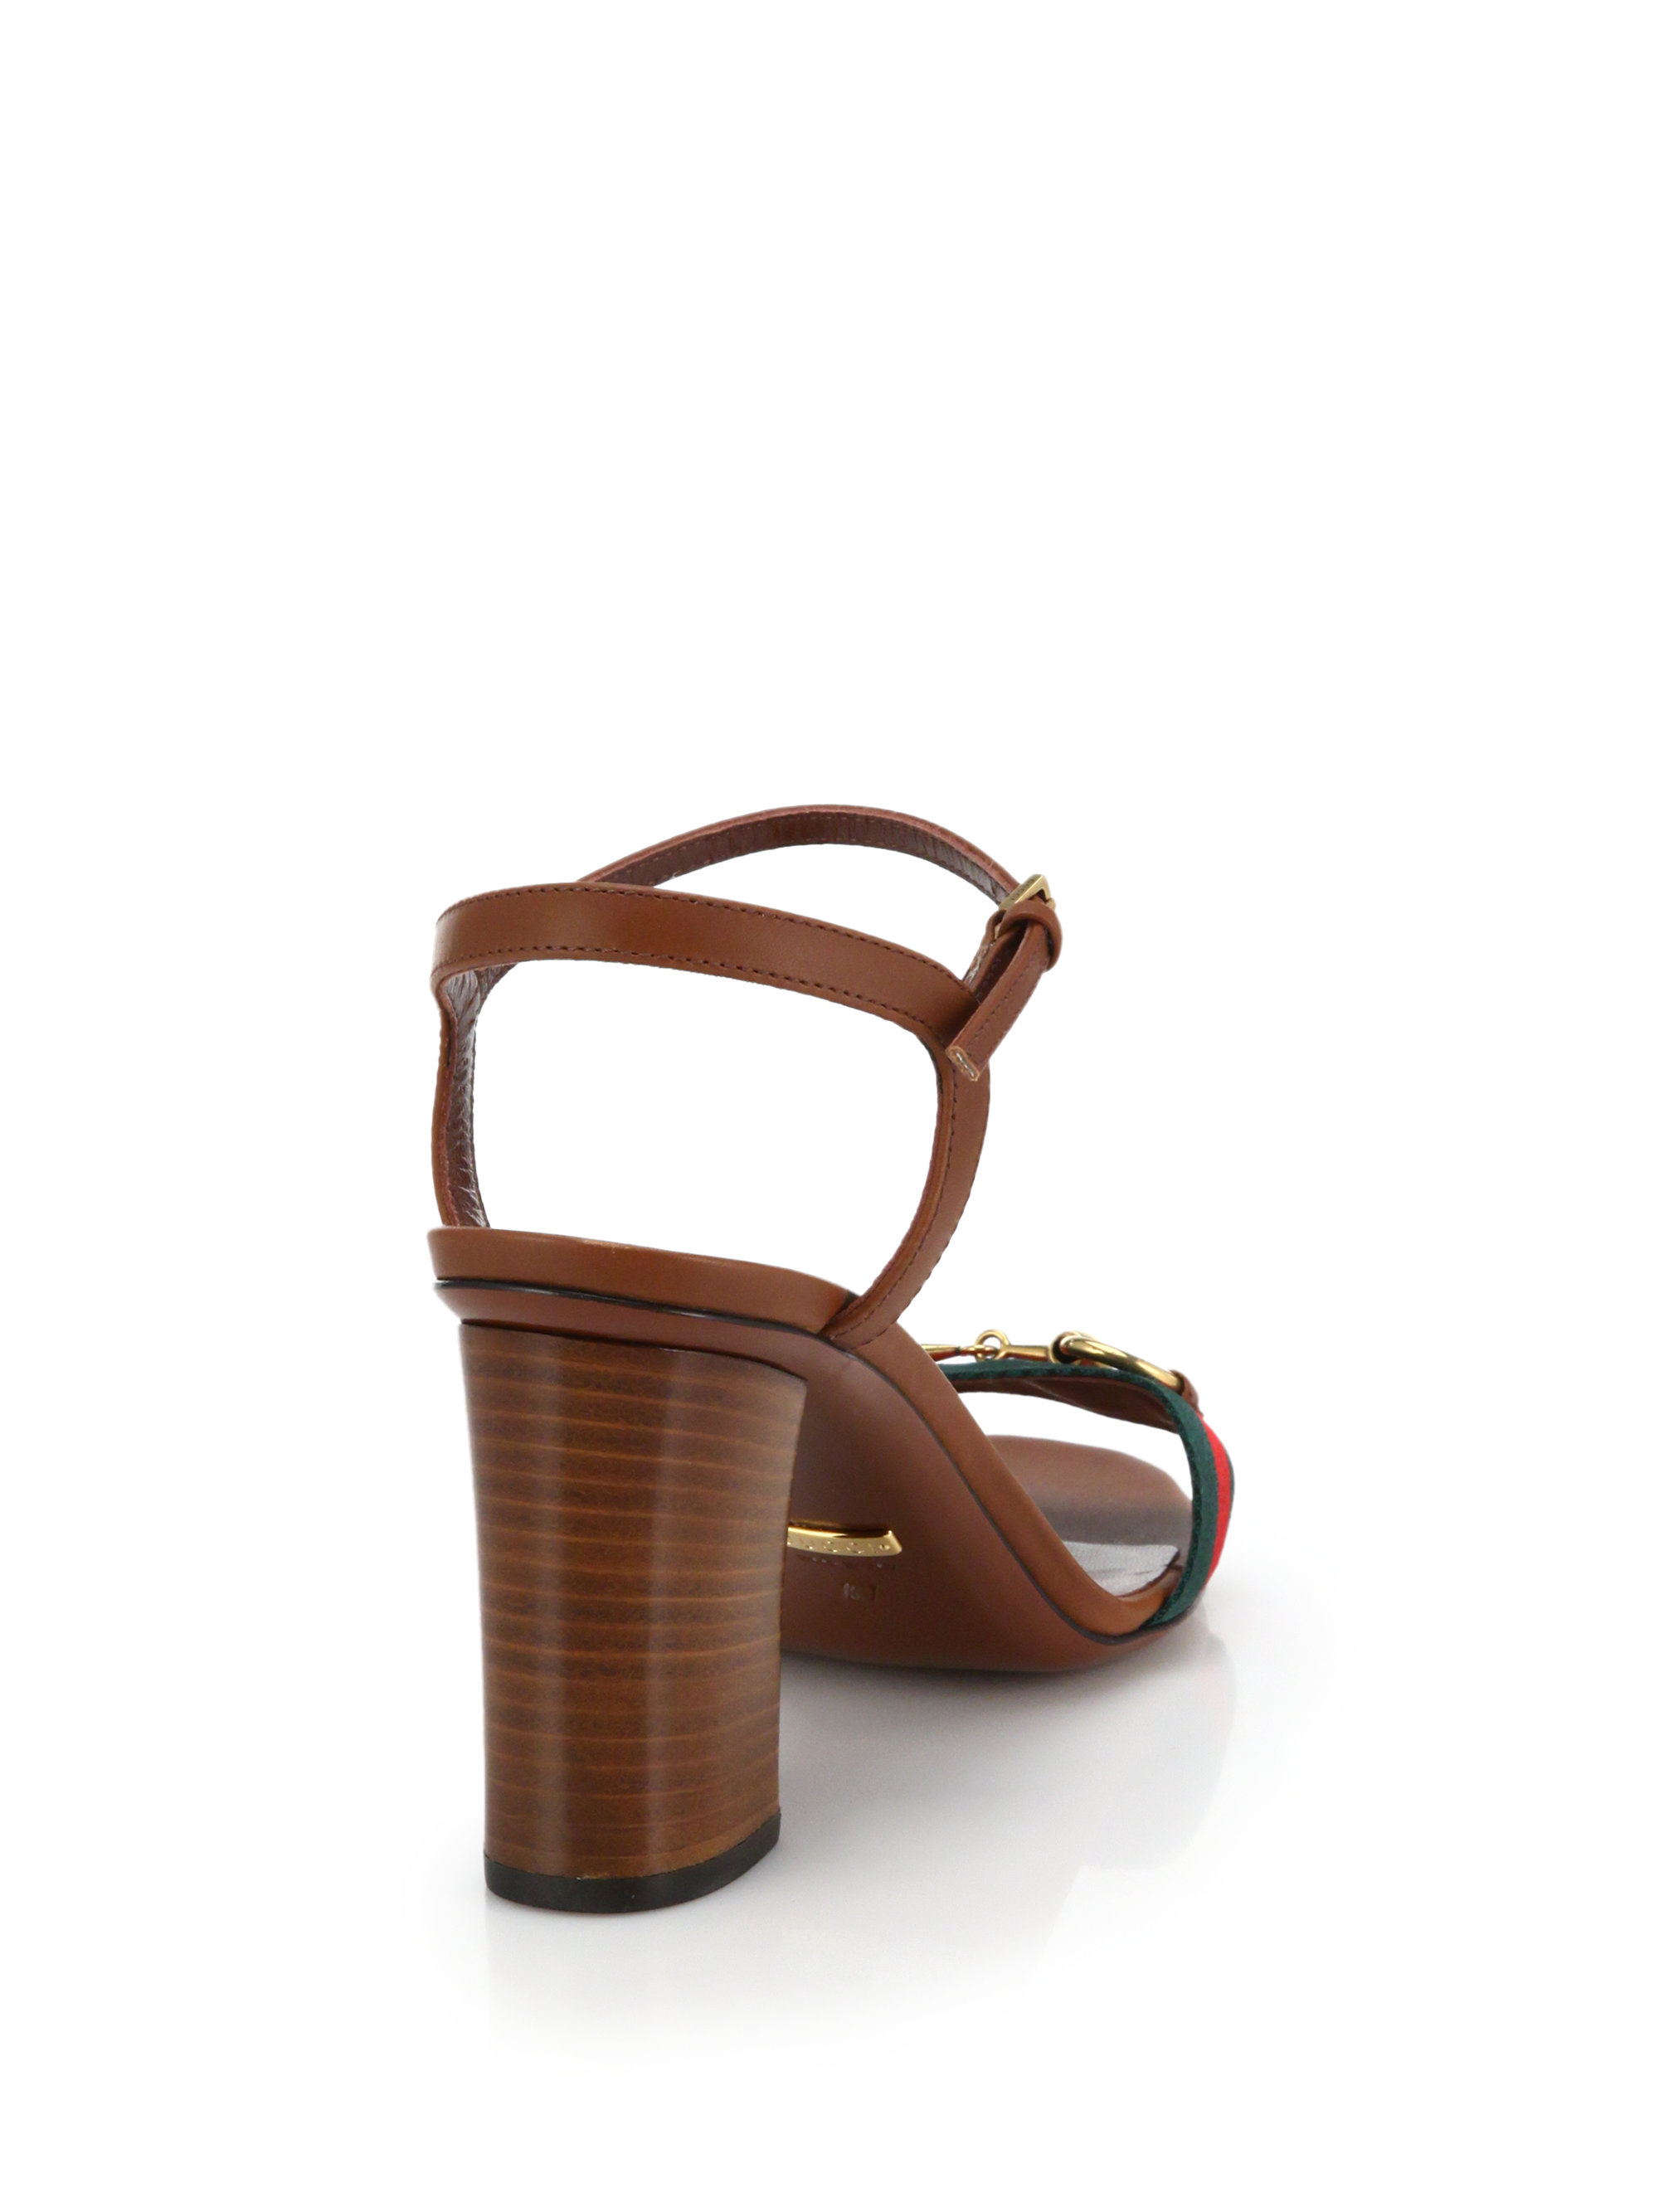 aca15c1dcb Gucci Horsebit Fabric & Leather Sandals in Brown - Lyst